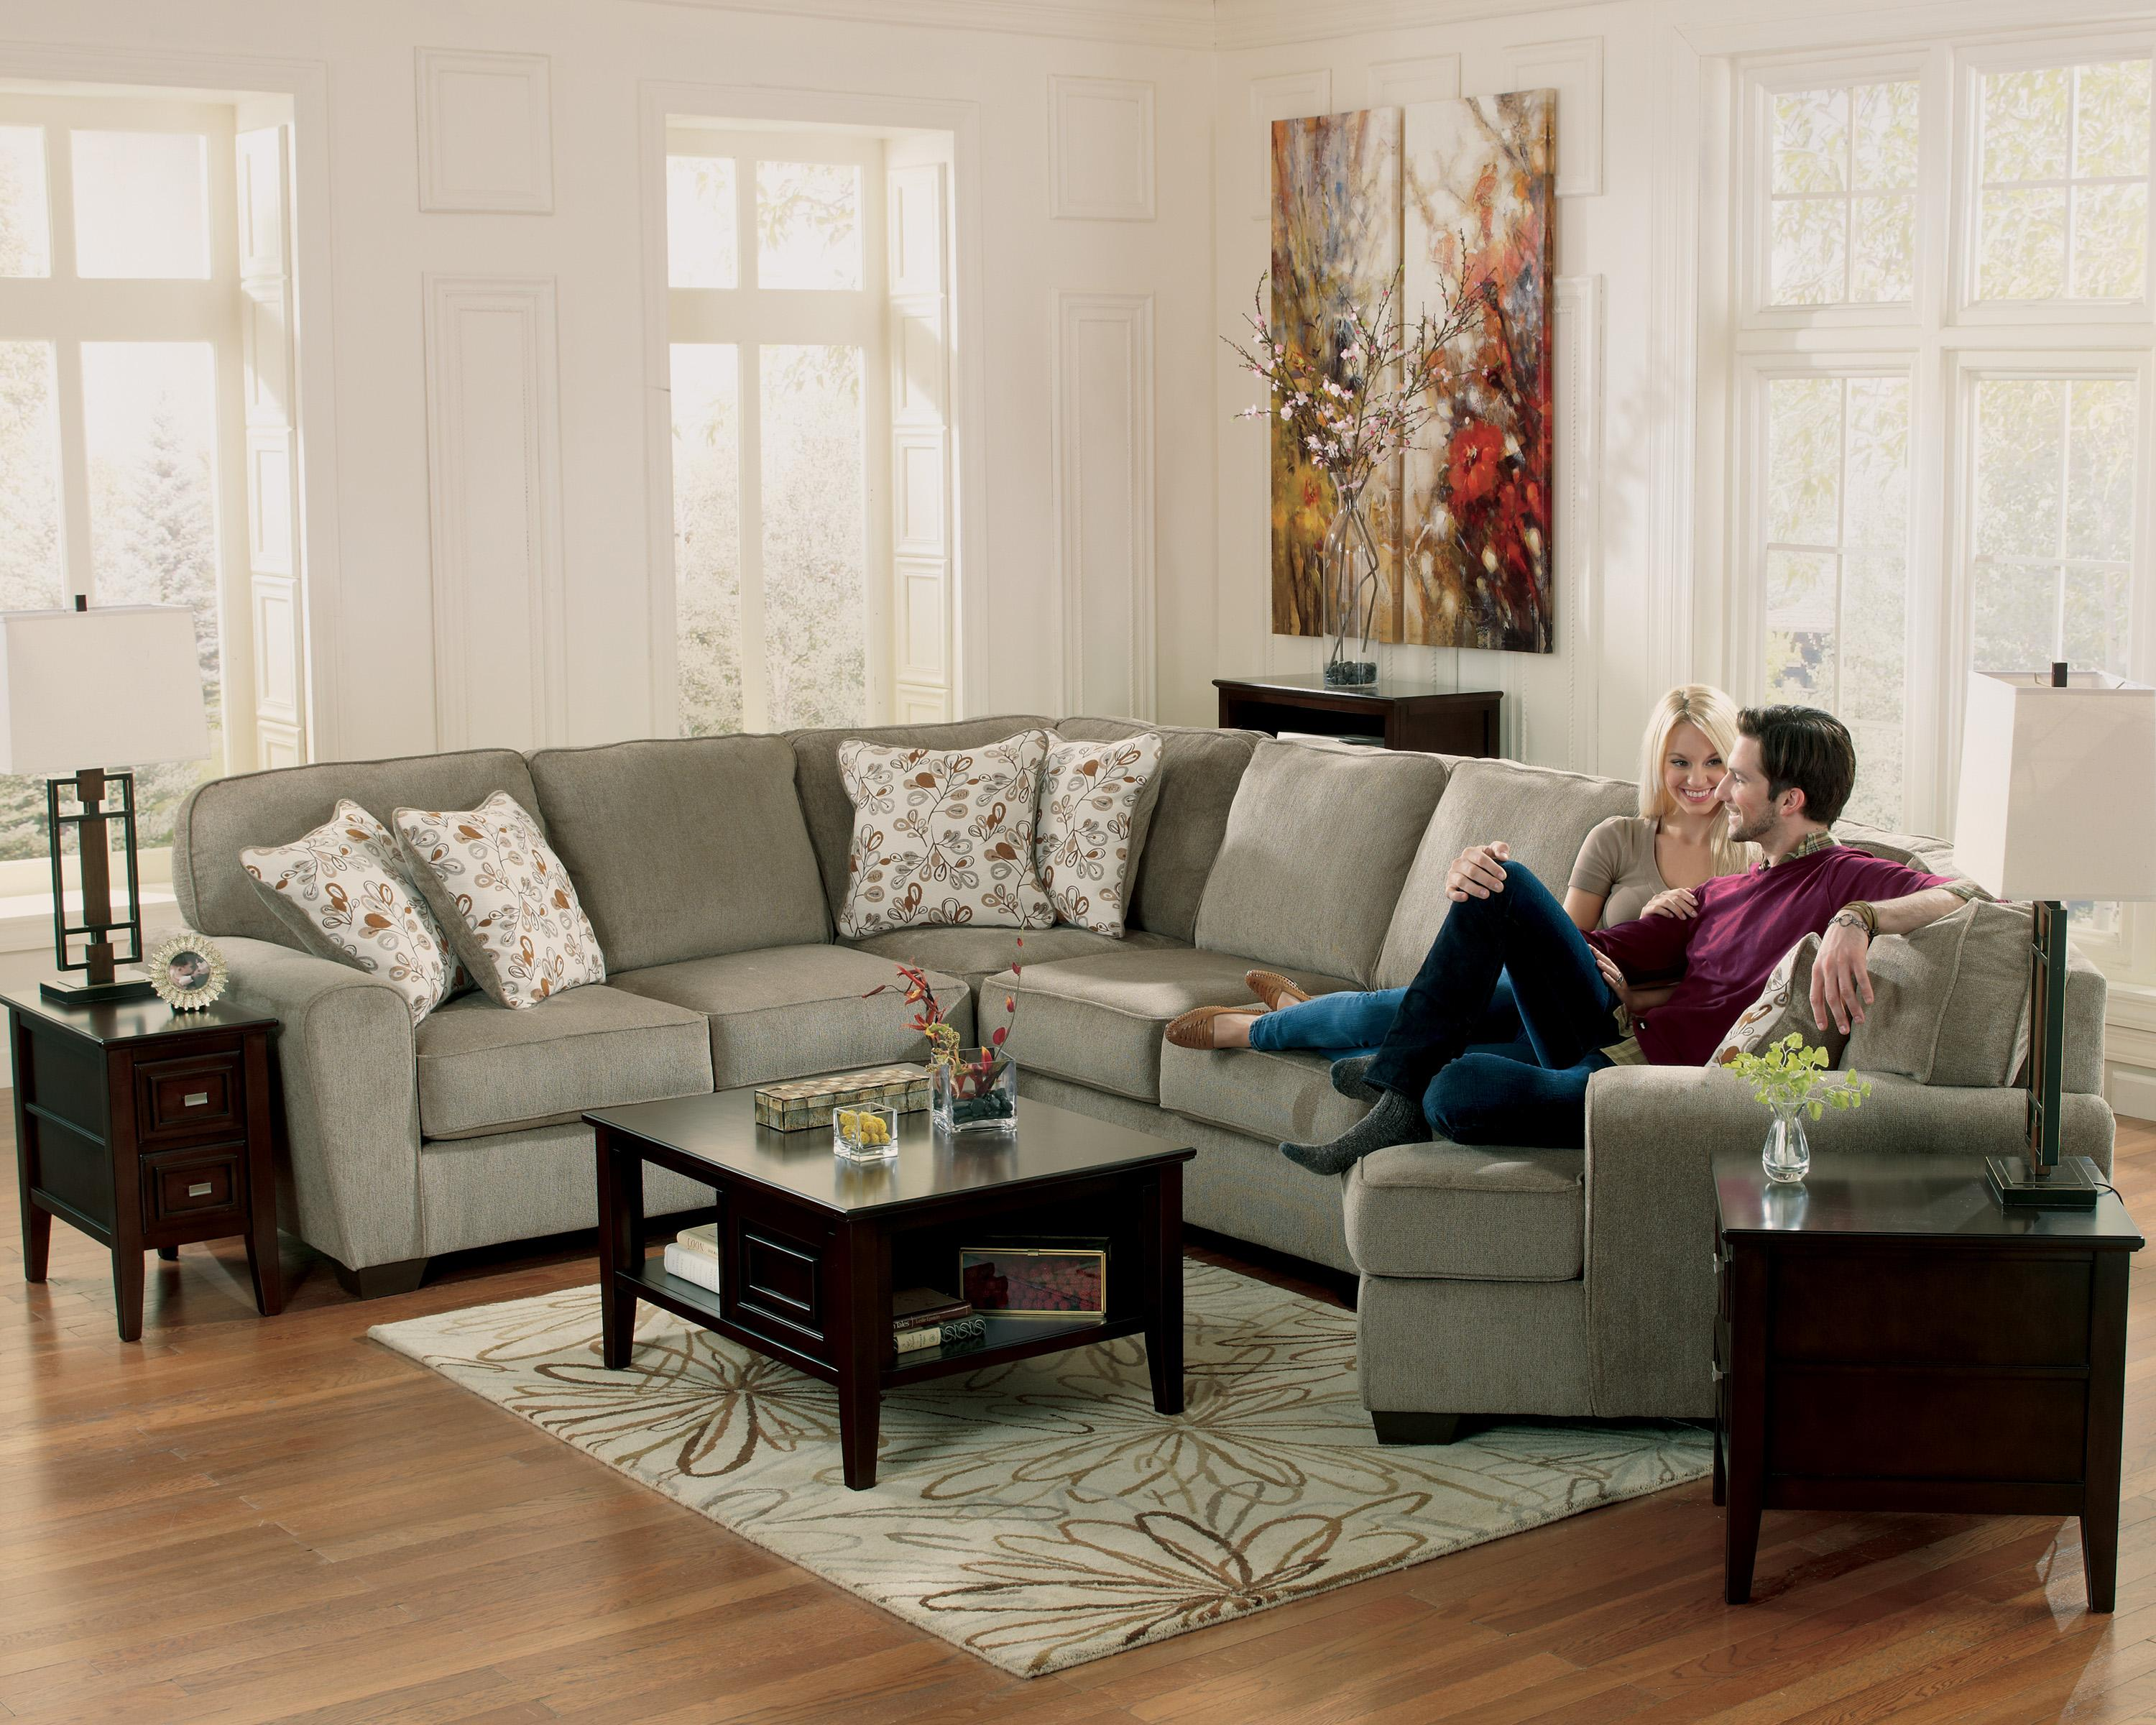 Ashley Furniture Patola Park Patina 4 Piece Small Sectional With Right Cuddler Van Hill